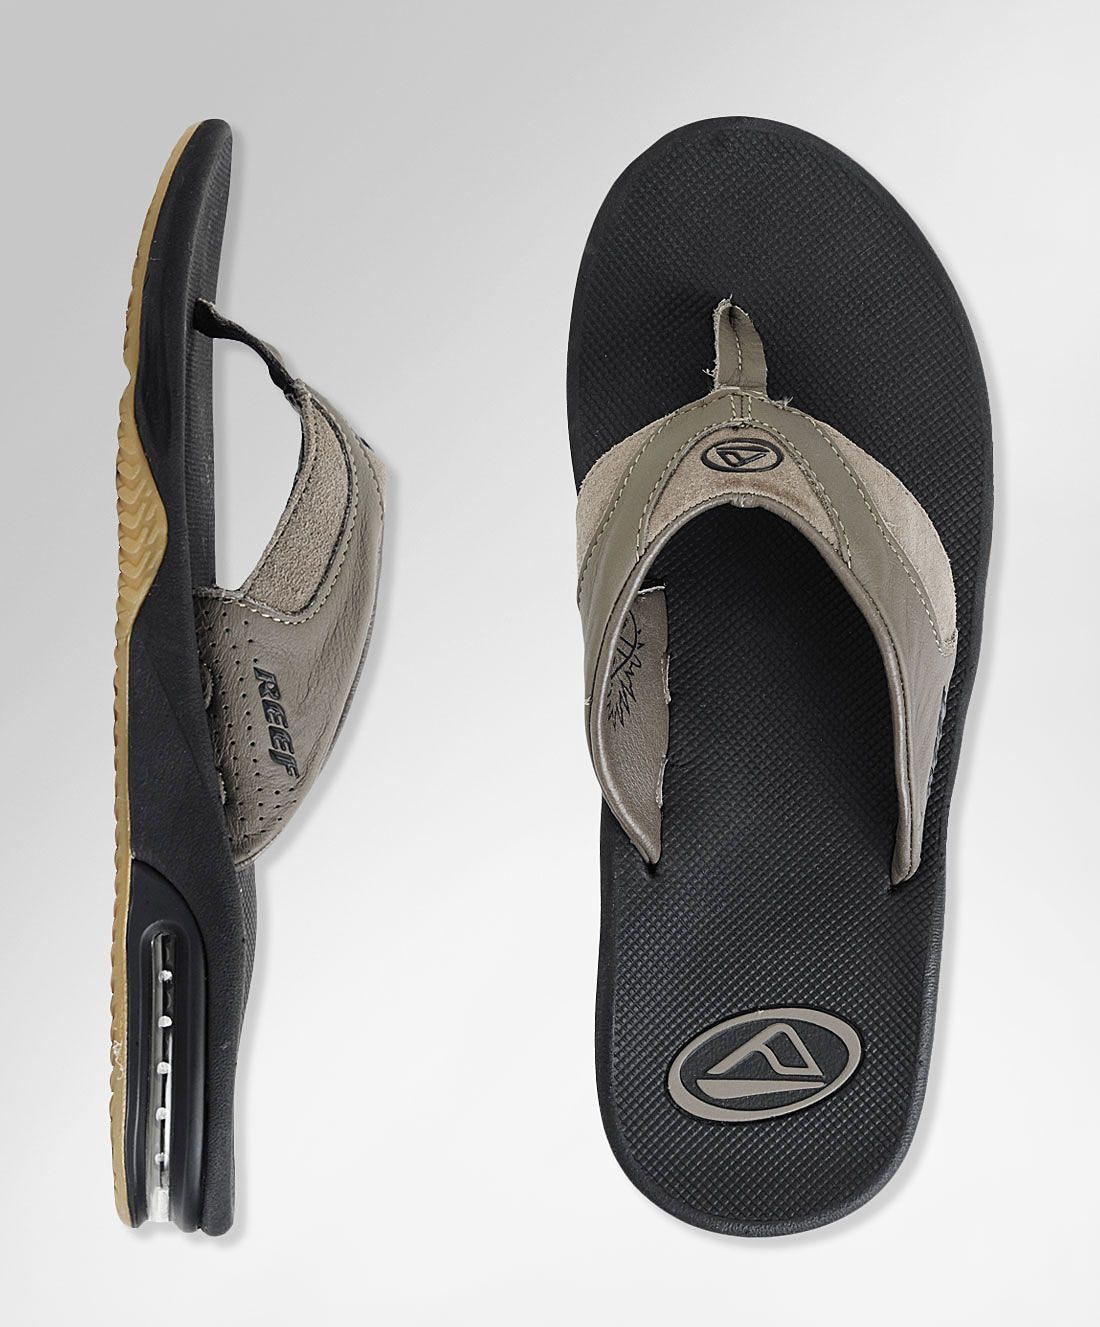 Reef Leather Fanning Sandals Reef Official Store | Stylish